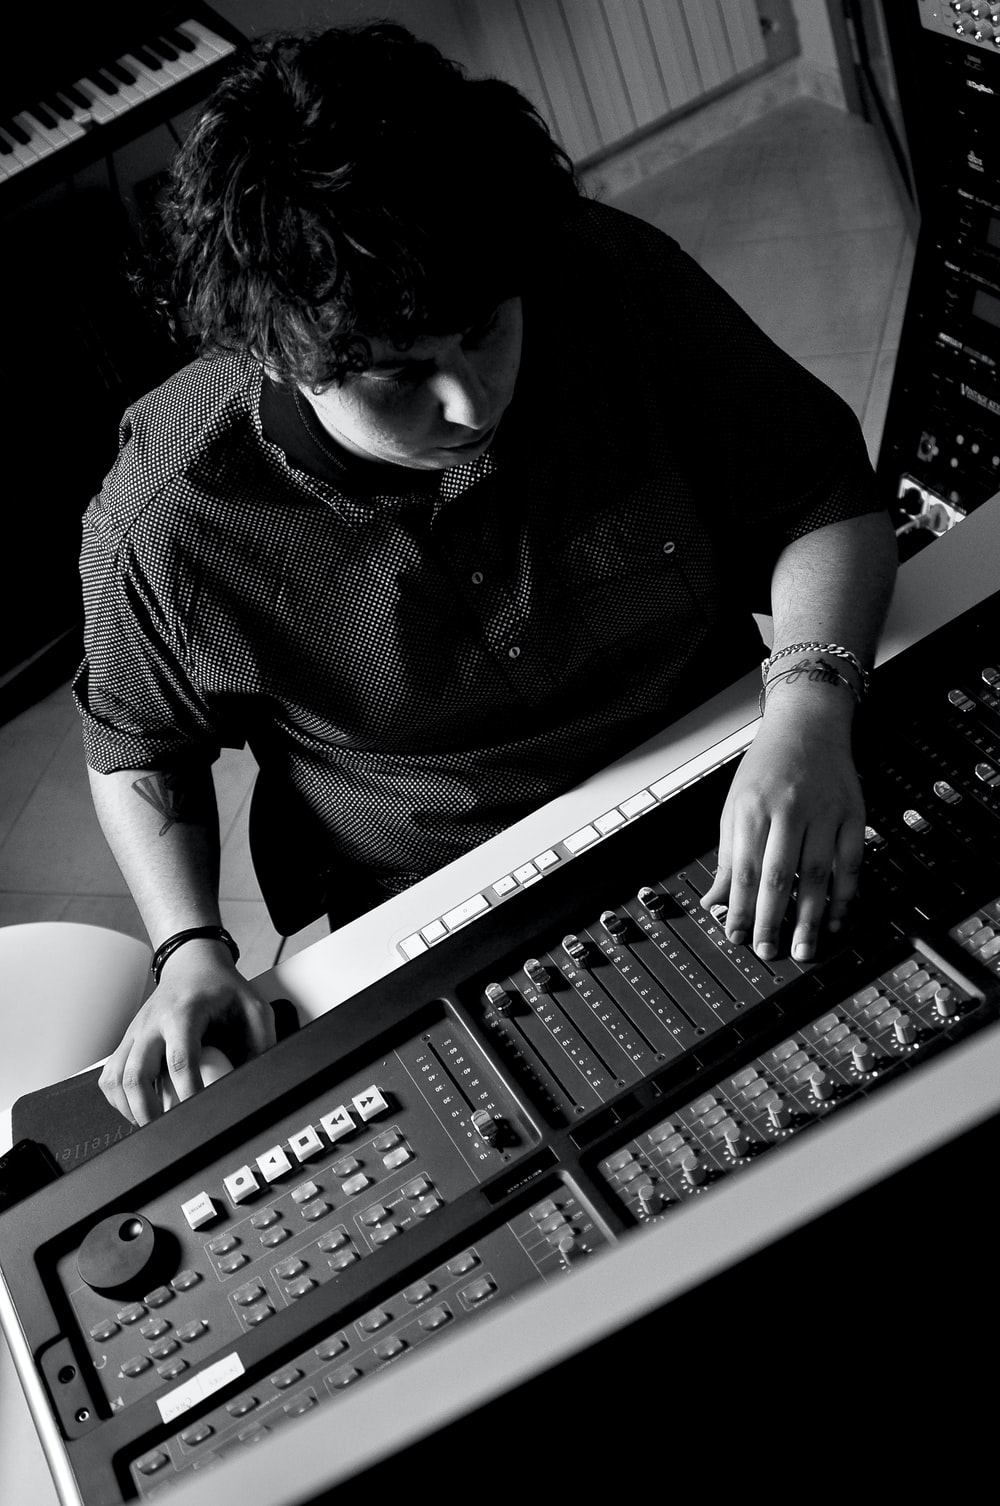 person playing audio mixer